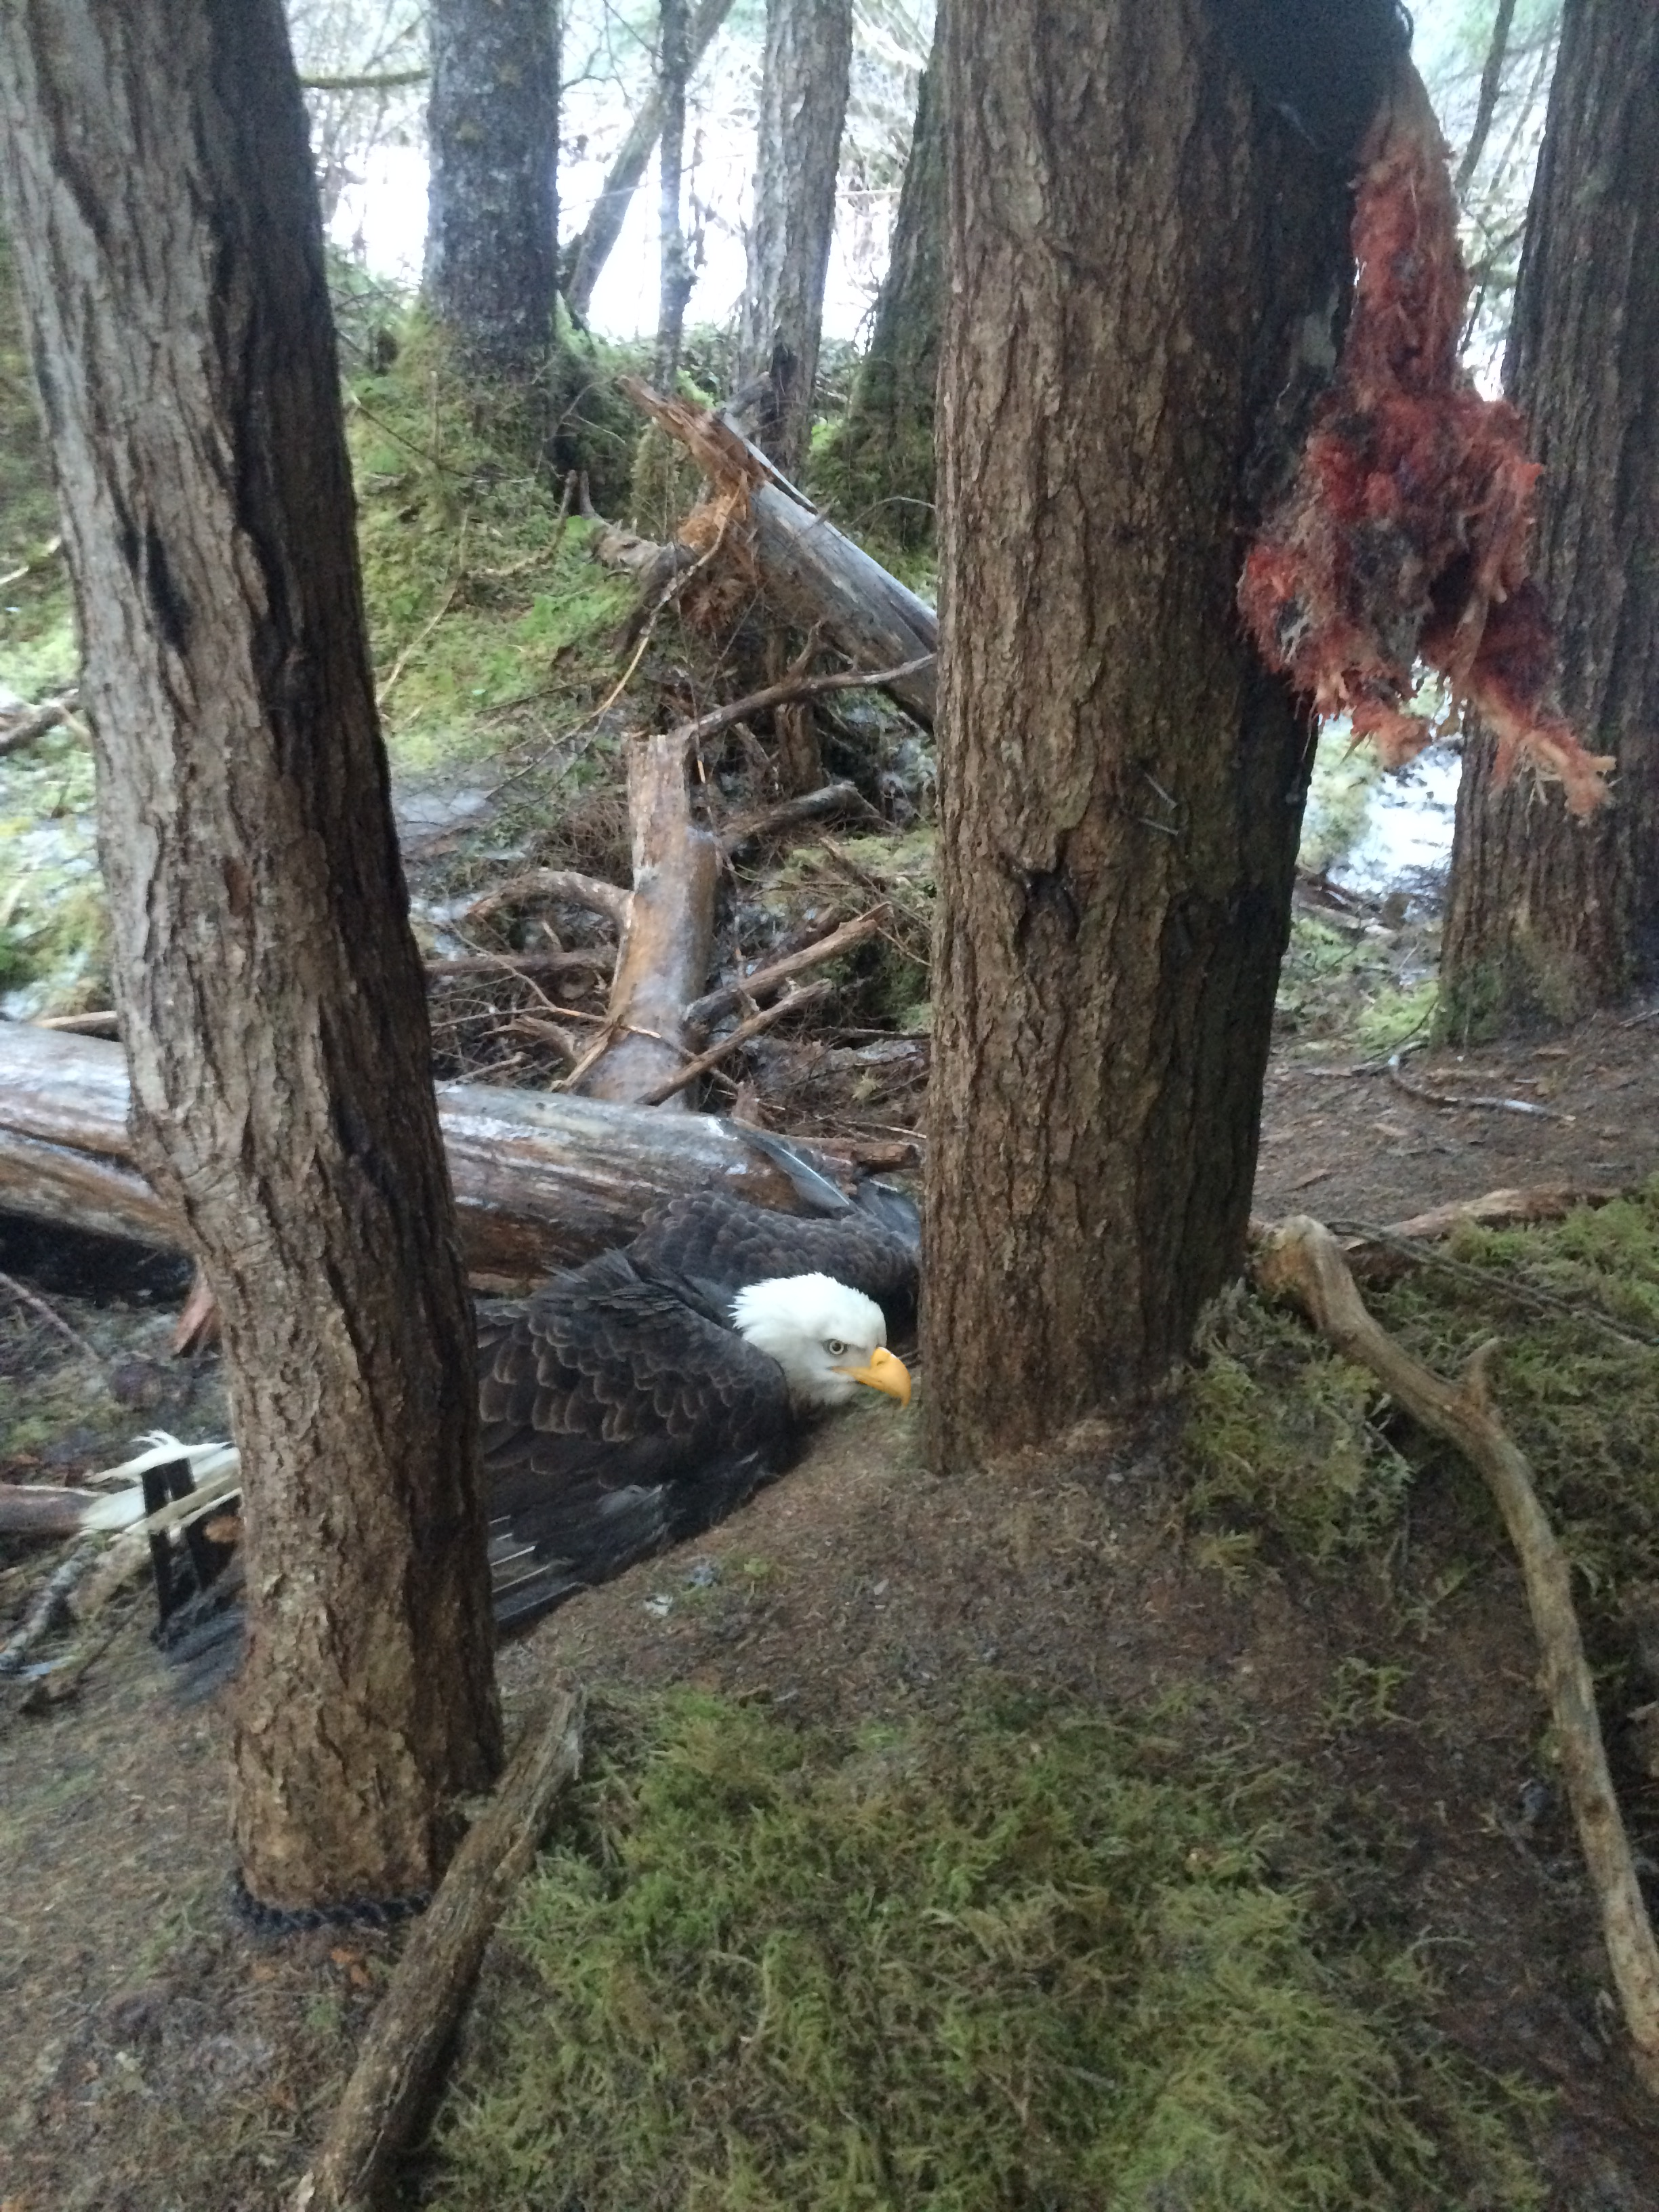 A beaver carcass hung on a nearby tree. About a foot above the carcass, Adair says she saw a covering made of branches. This may have been meant to visually block the bait from birds flying above. (Photo courtesy Kathleen Adair)